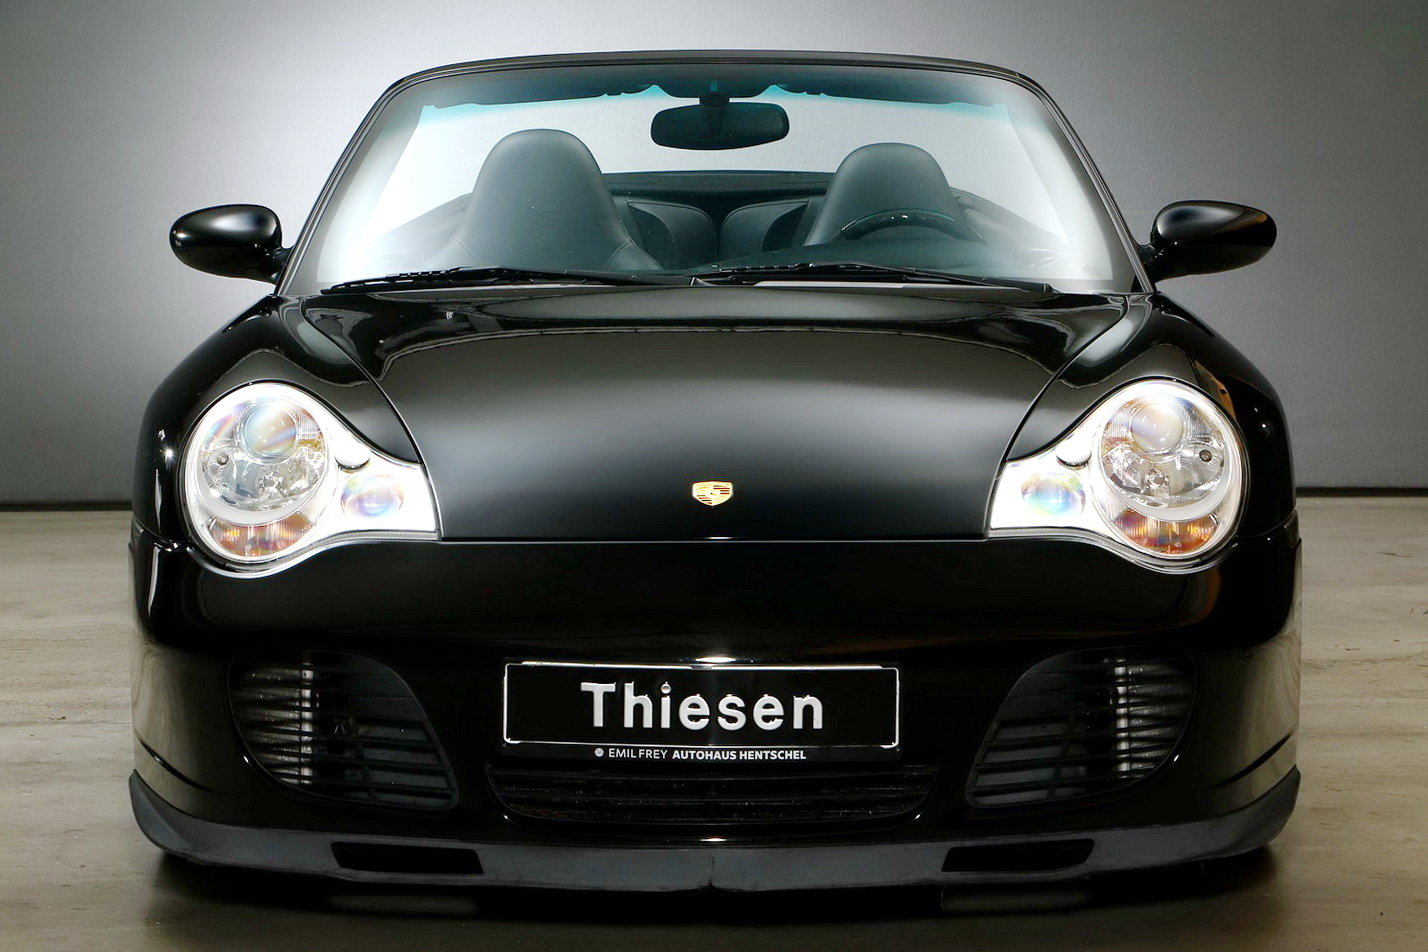 2005 Porsche 996 Turbo S Cabriolet For Sale (picture 3 of 6)